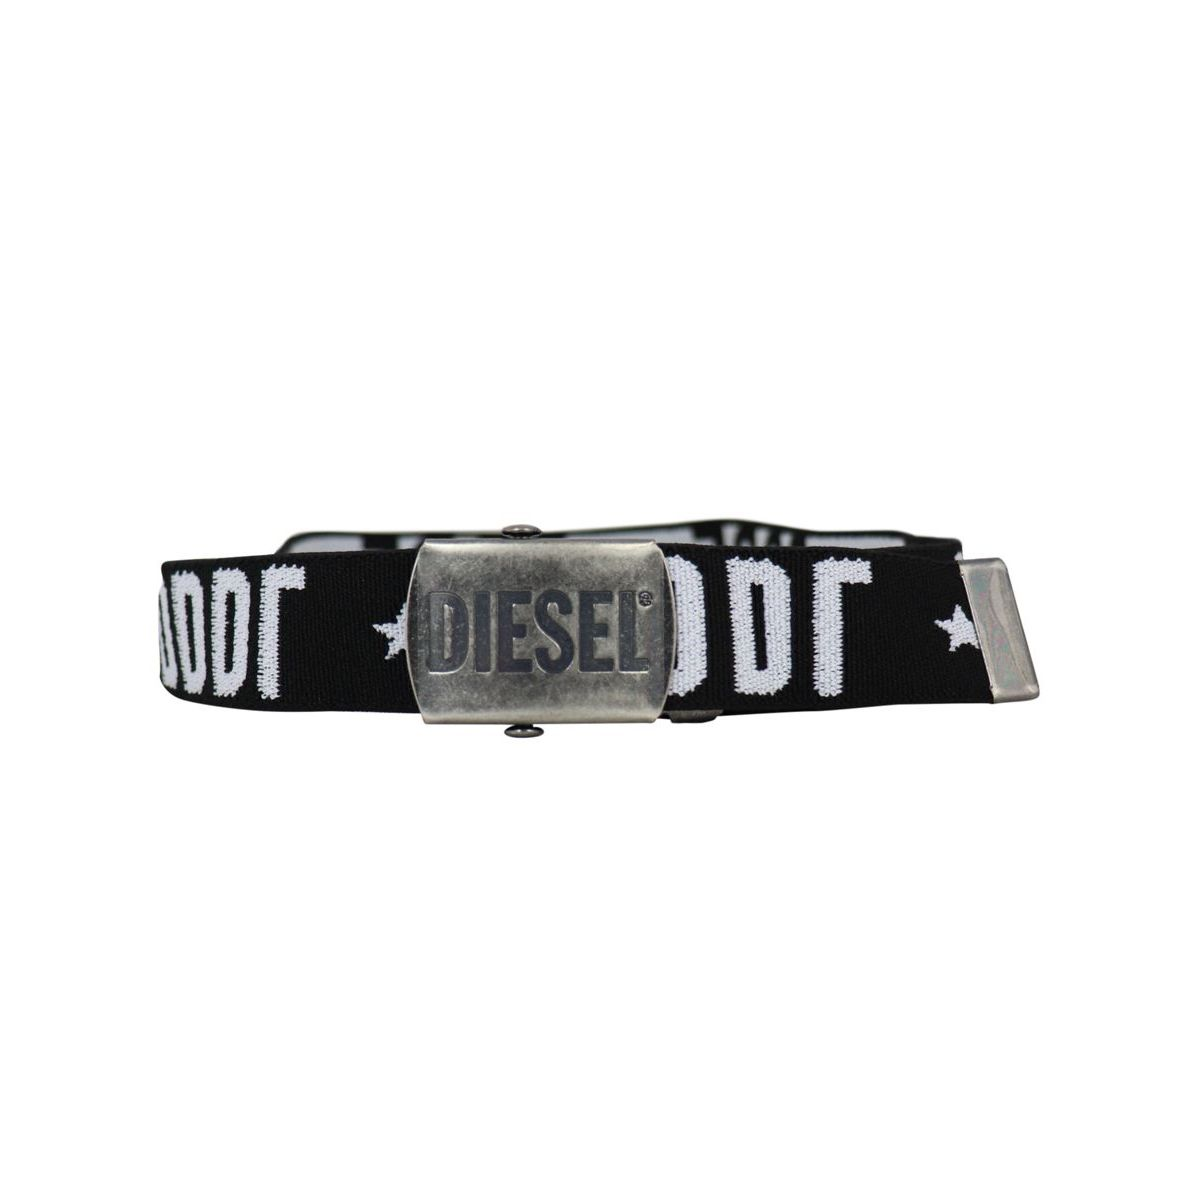 Stretch Barty belt with logo Black Diesel